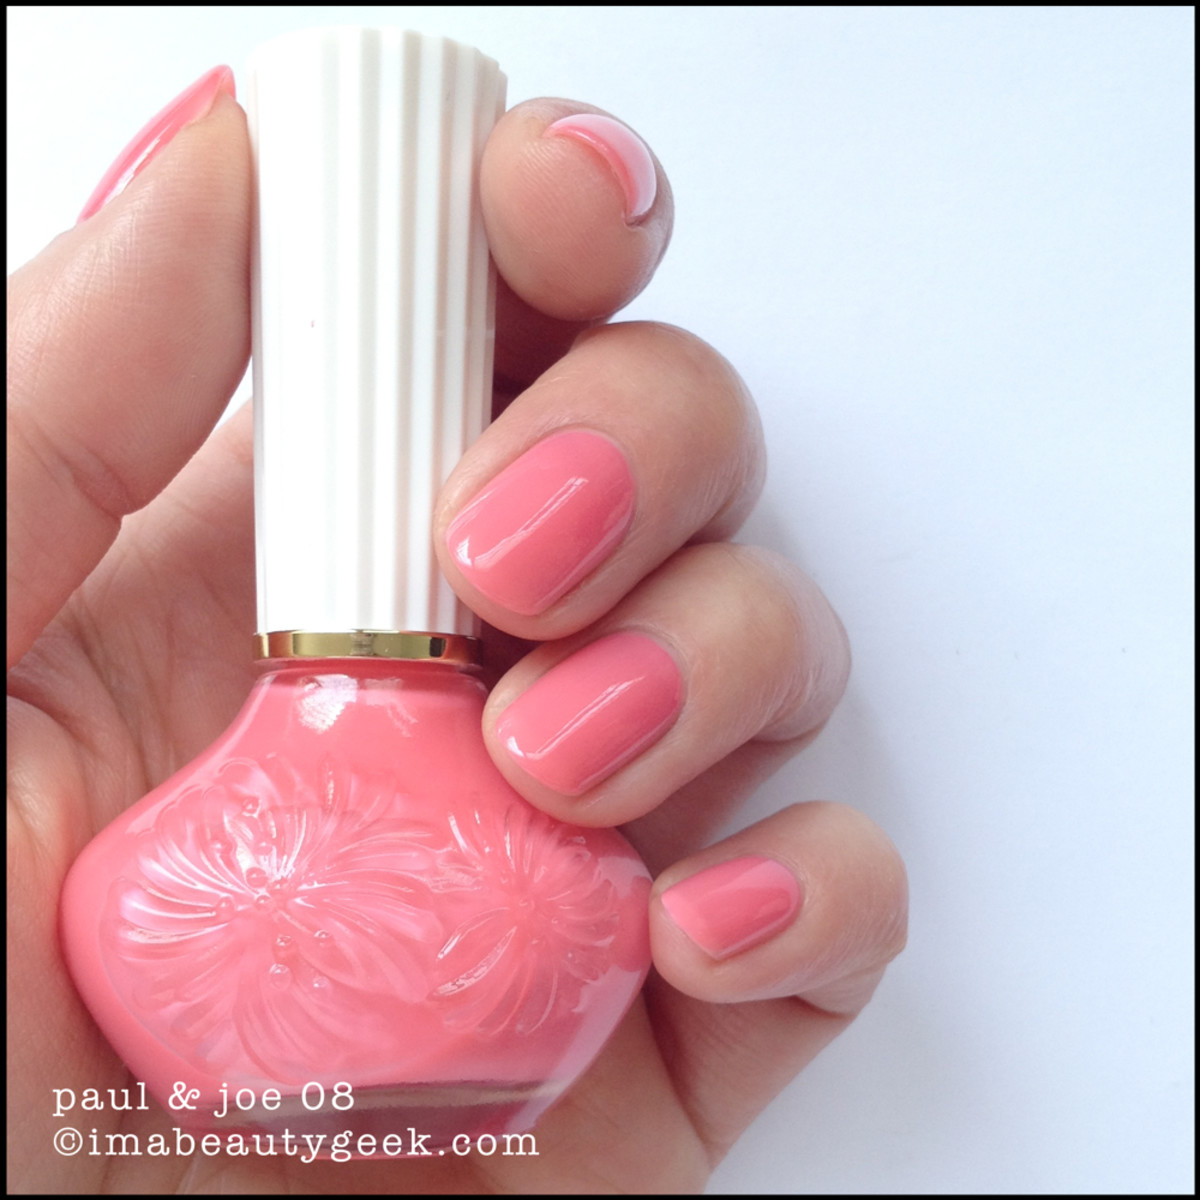 Paul & Joe Nail Polish 08 Flamingo Pink